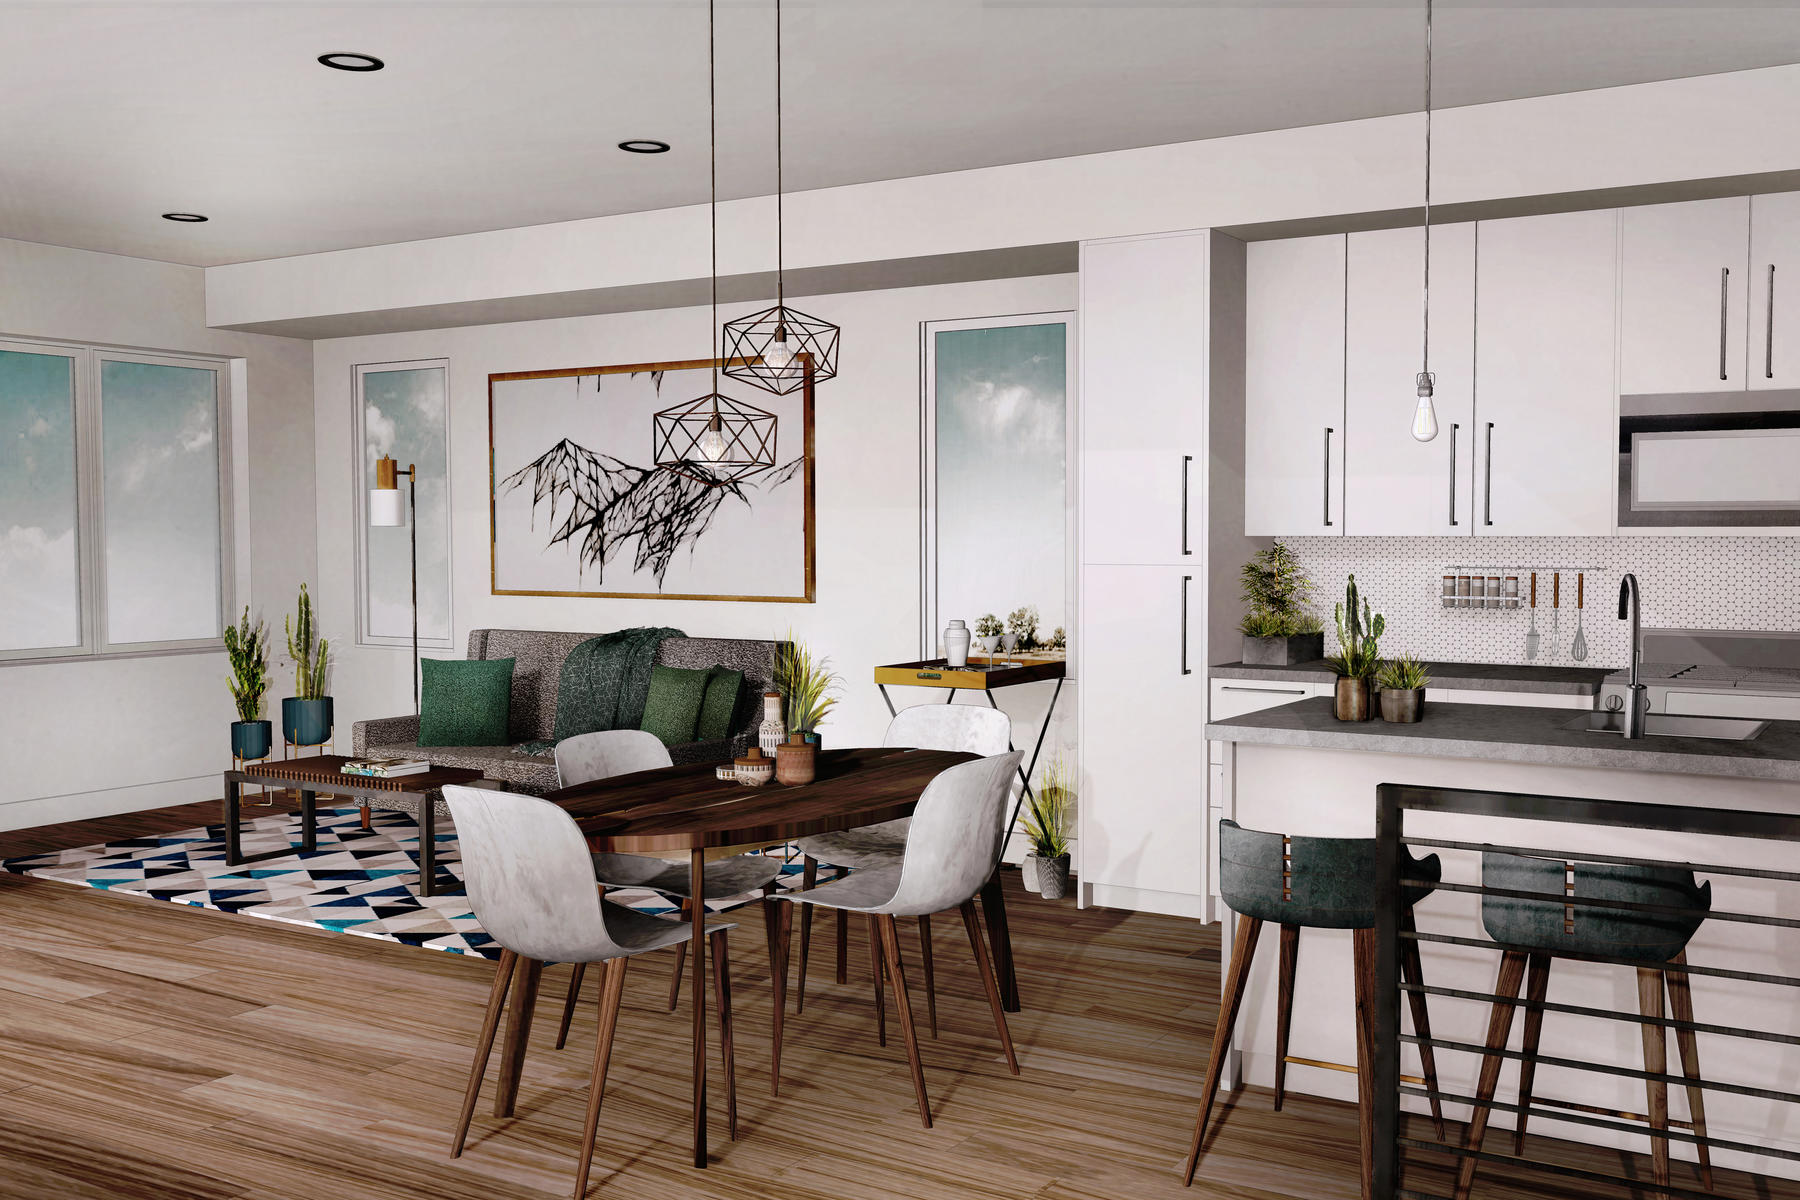 townhouses для того Продажа на New Townhomes in SoBo! 3372 S Pearl Street Unit #A, Englewood, Колорадо 80113 Соединенные Штаты